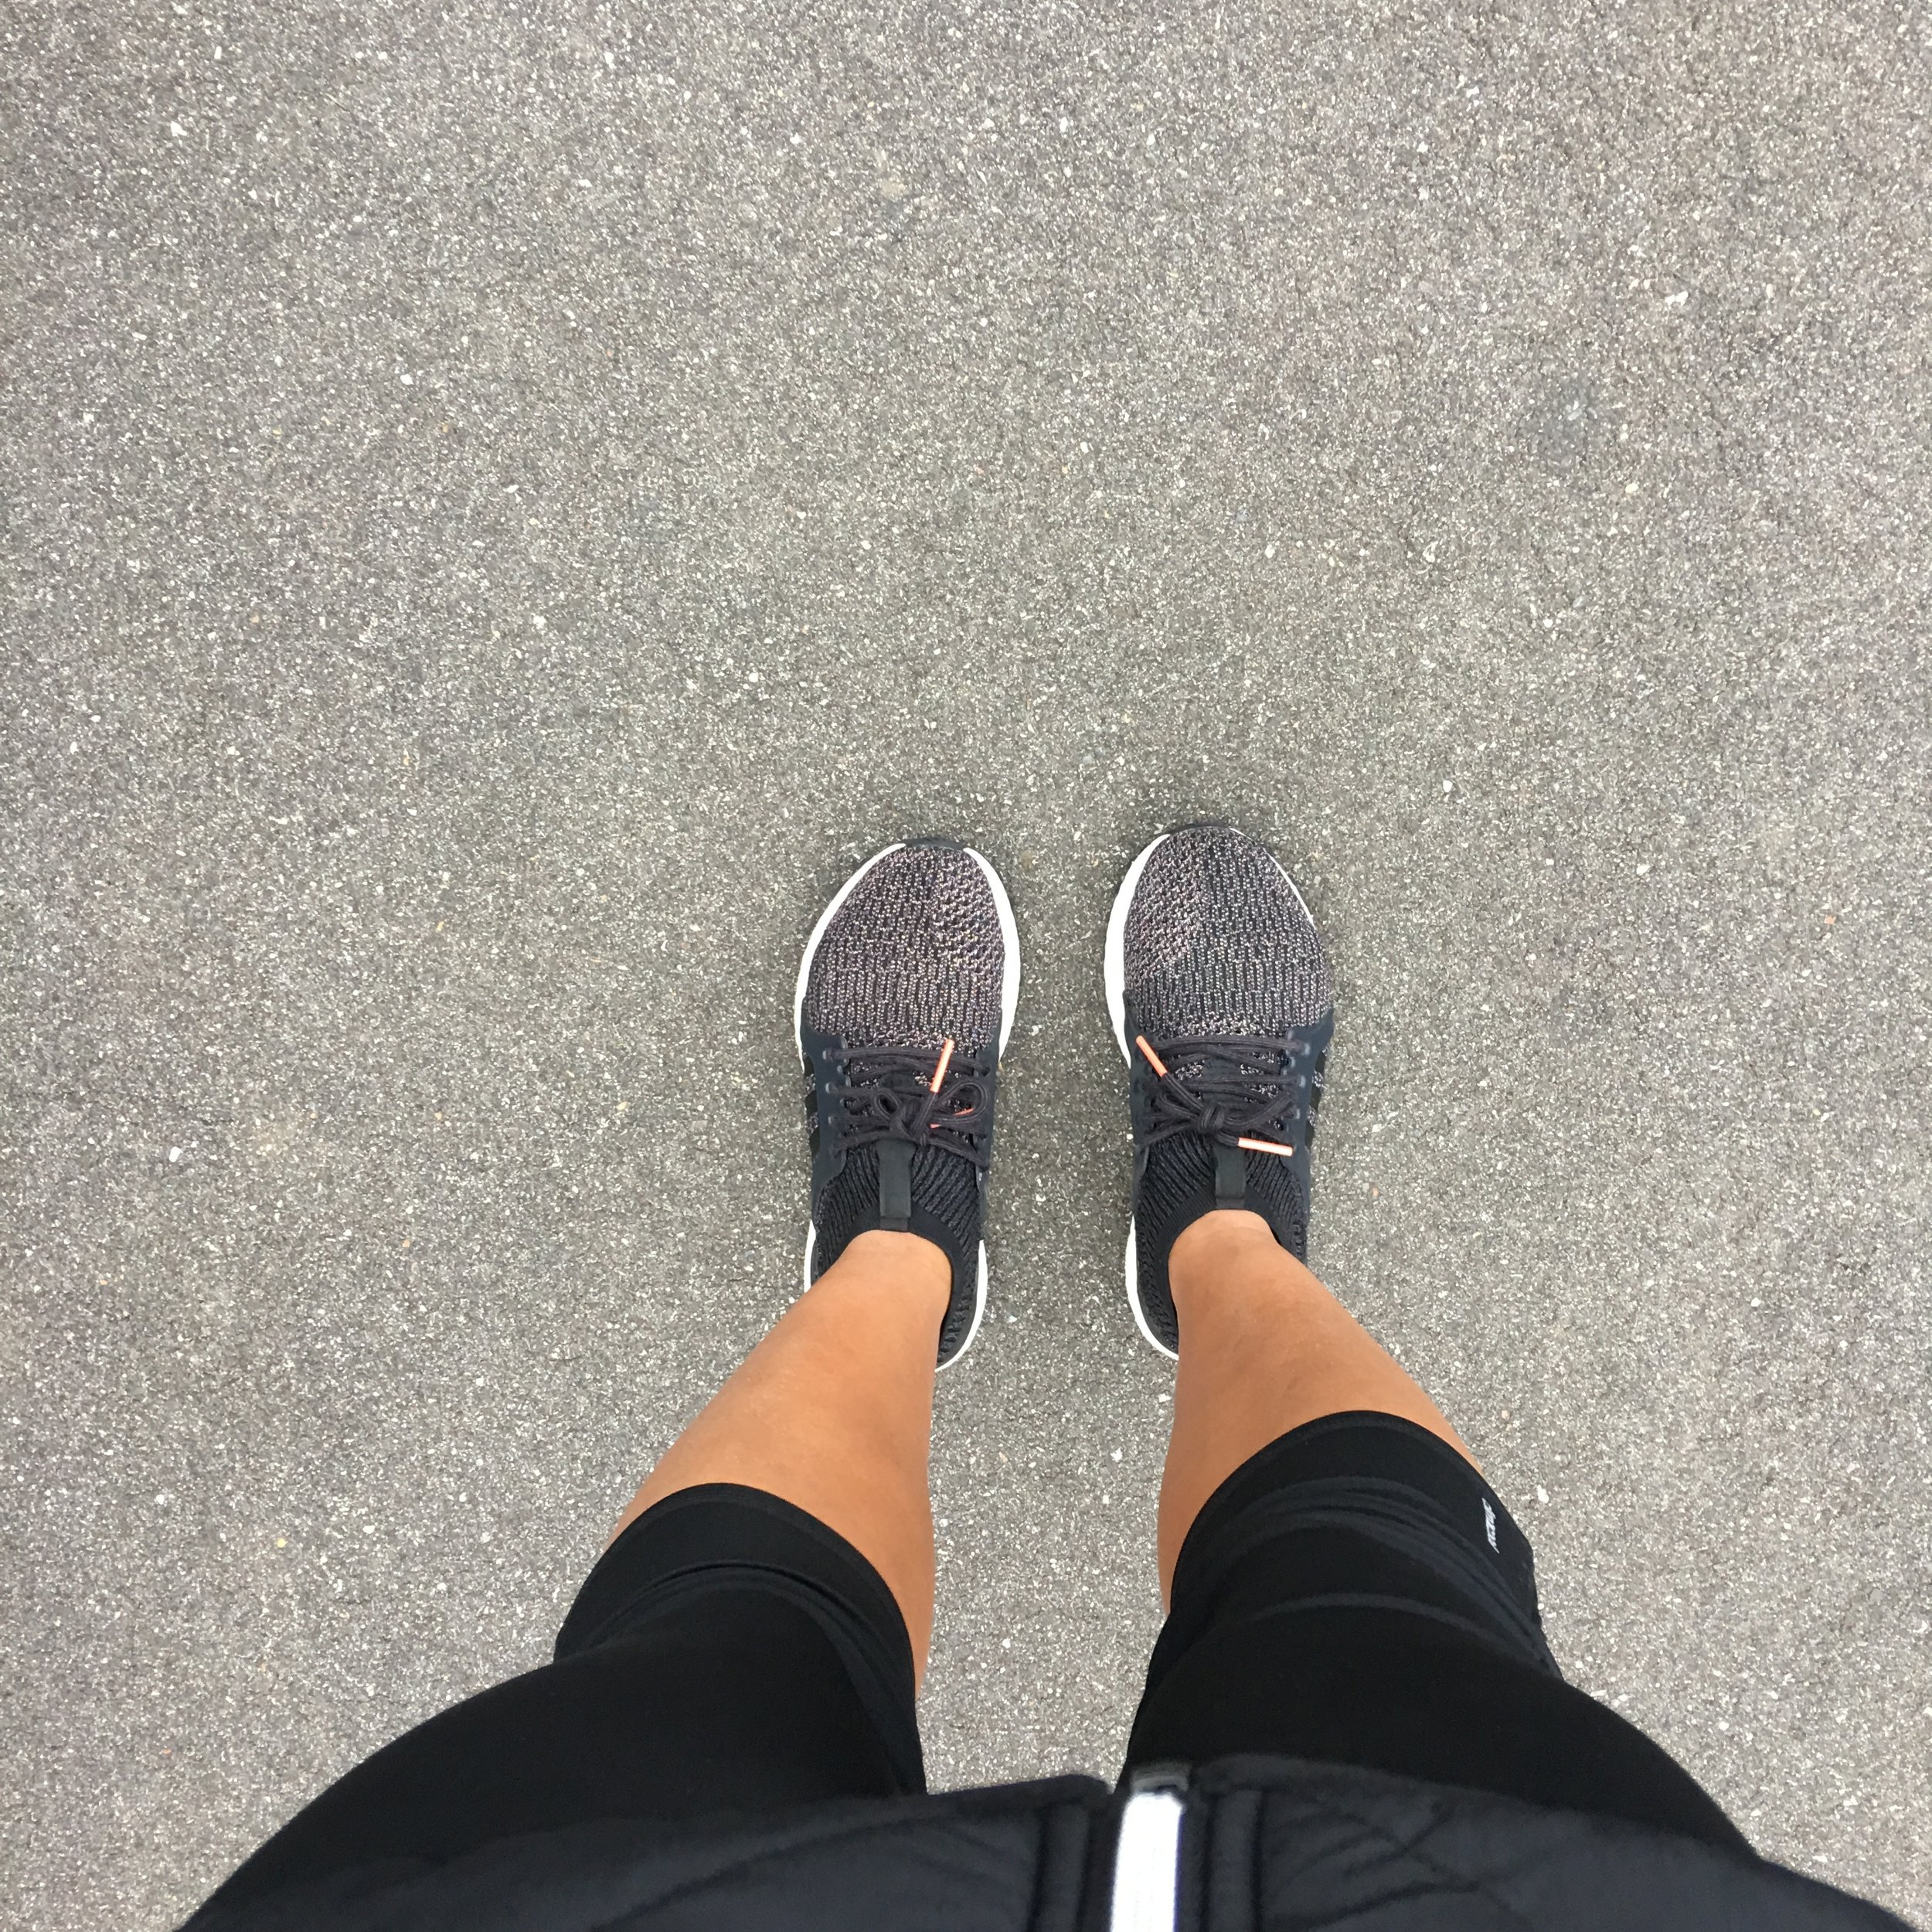 Here I am wearing the UltraBOOST X All-Terrain out on a run